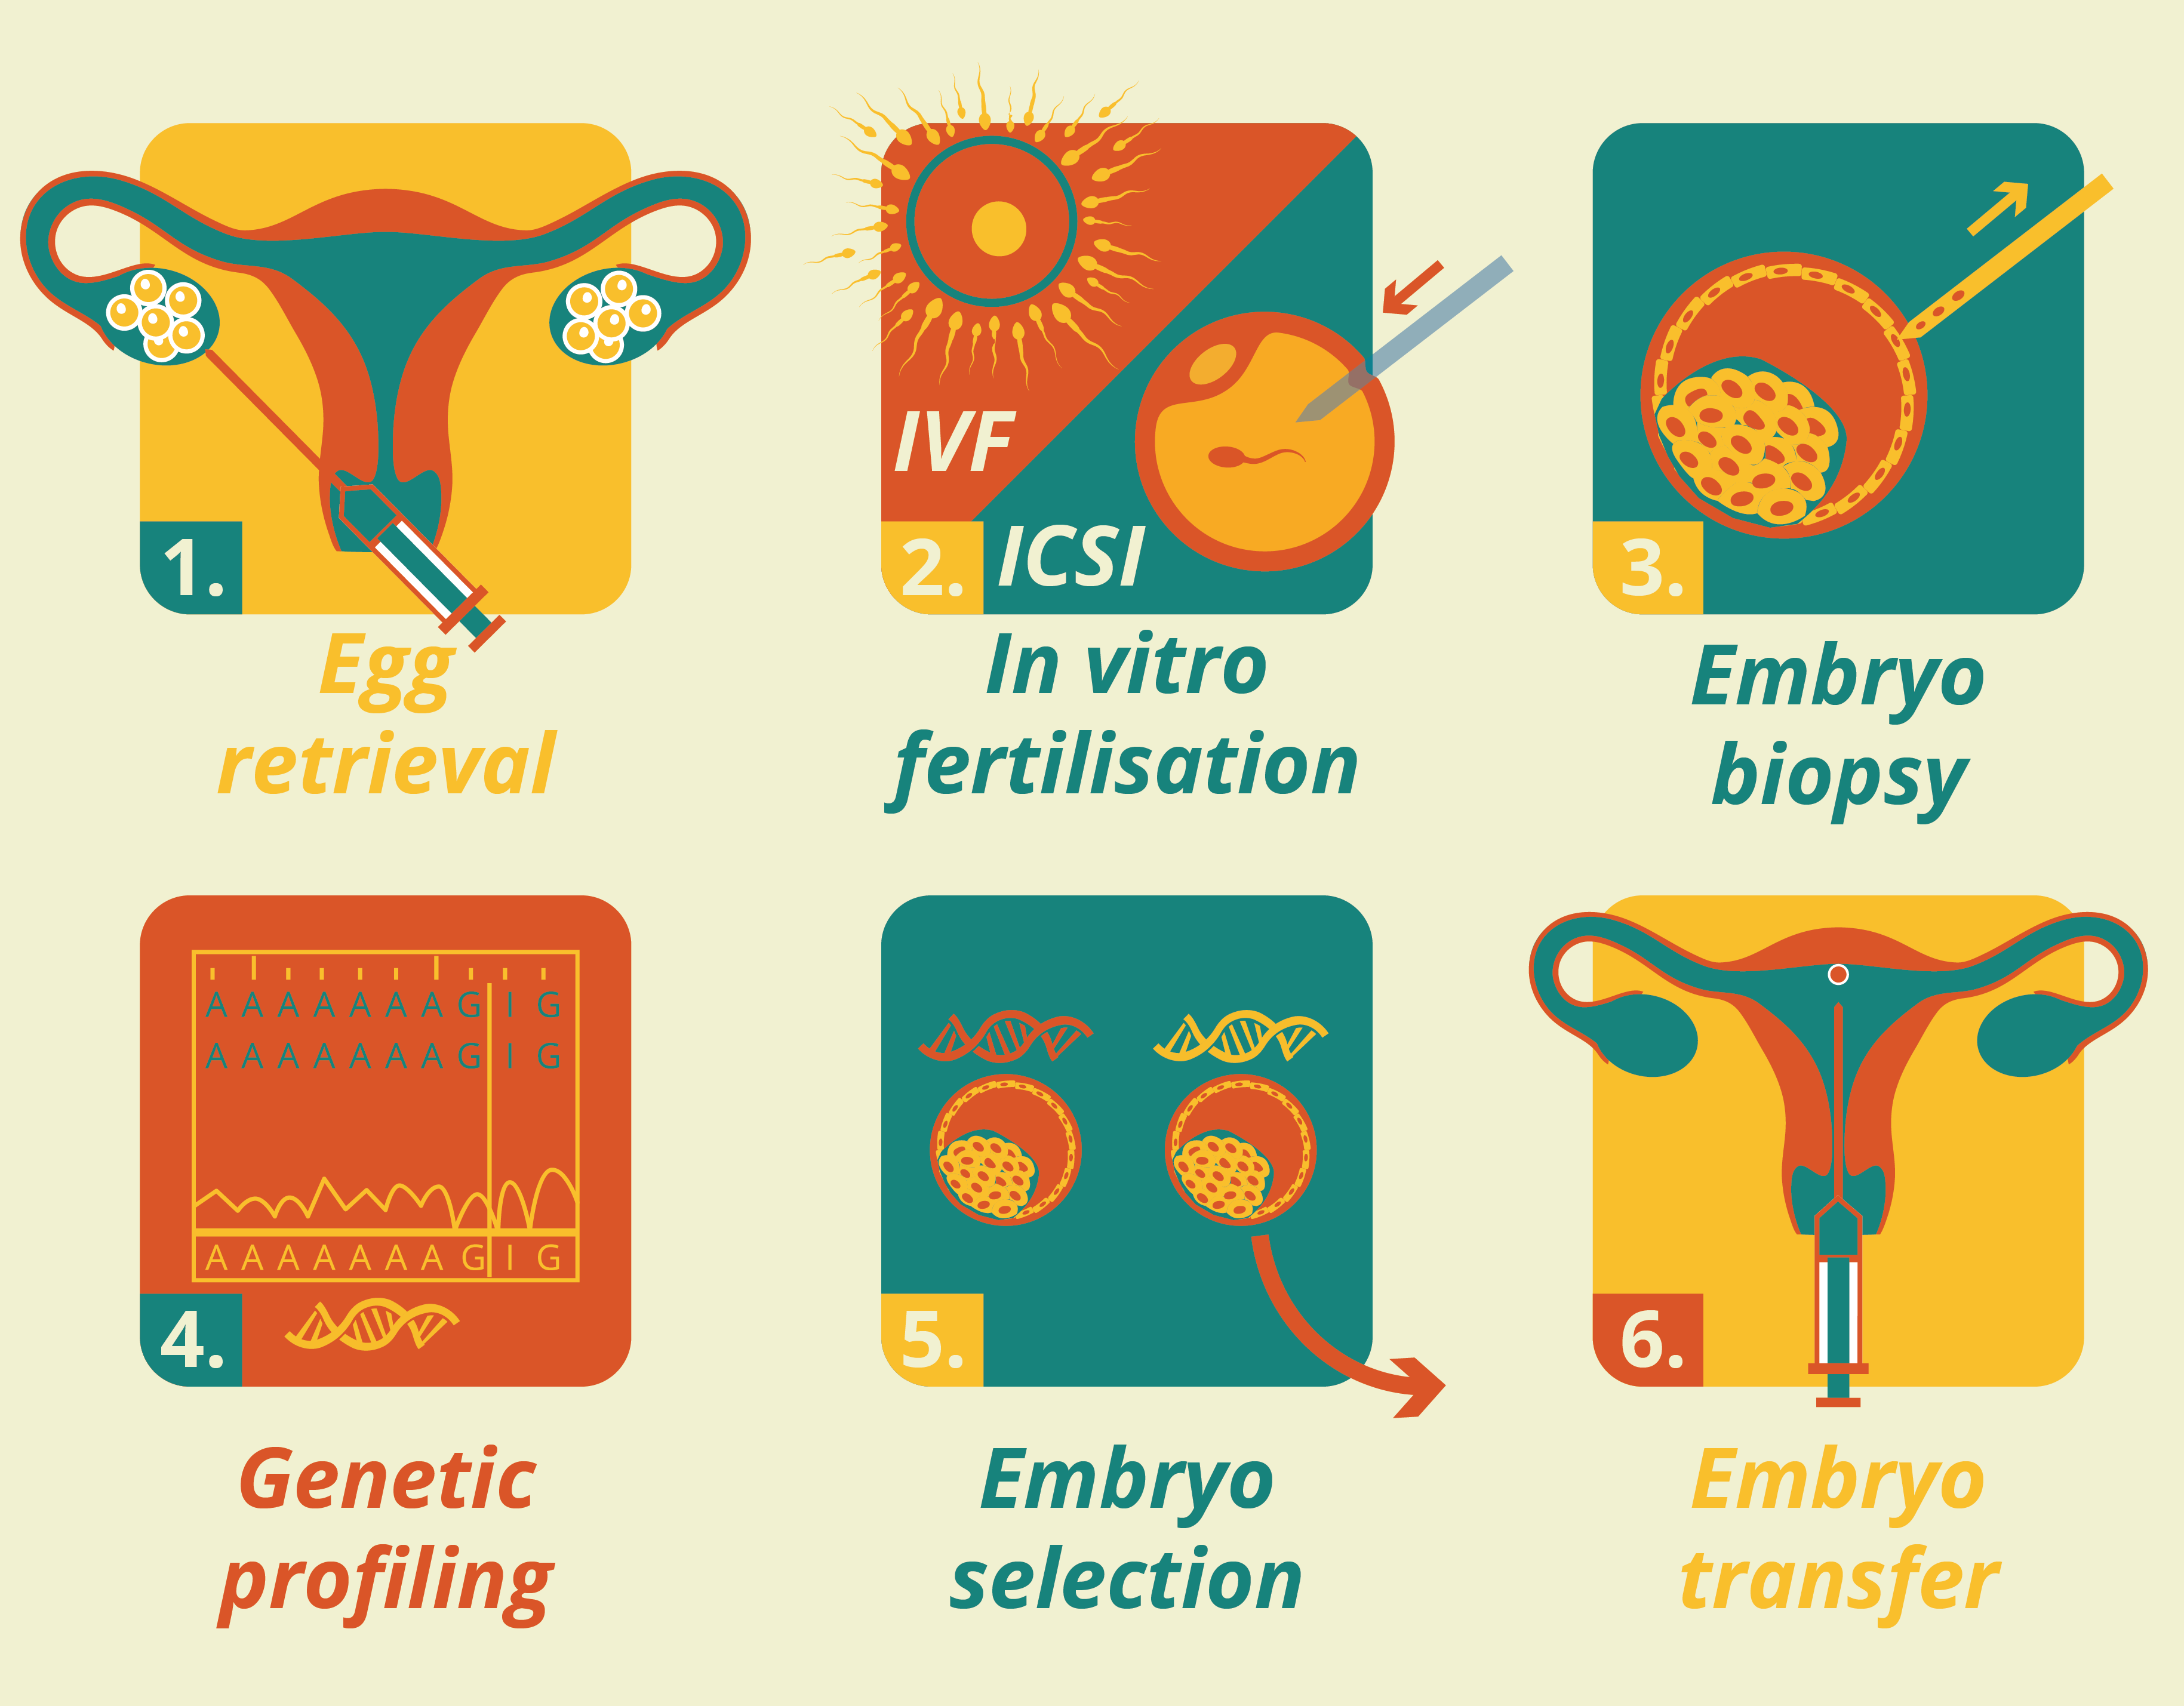 These are the key steps of PGD: 1. Egg retrieval 2. In vitro fertilisation 3. Embryo biopsy 4. Genetic profiling 5. Embryo selection 6. Embryo implantation